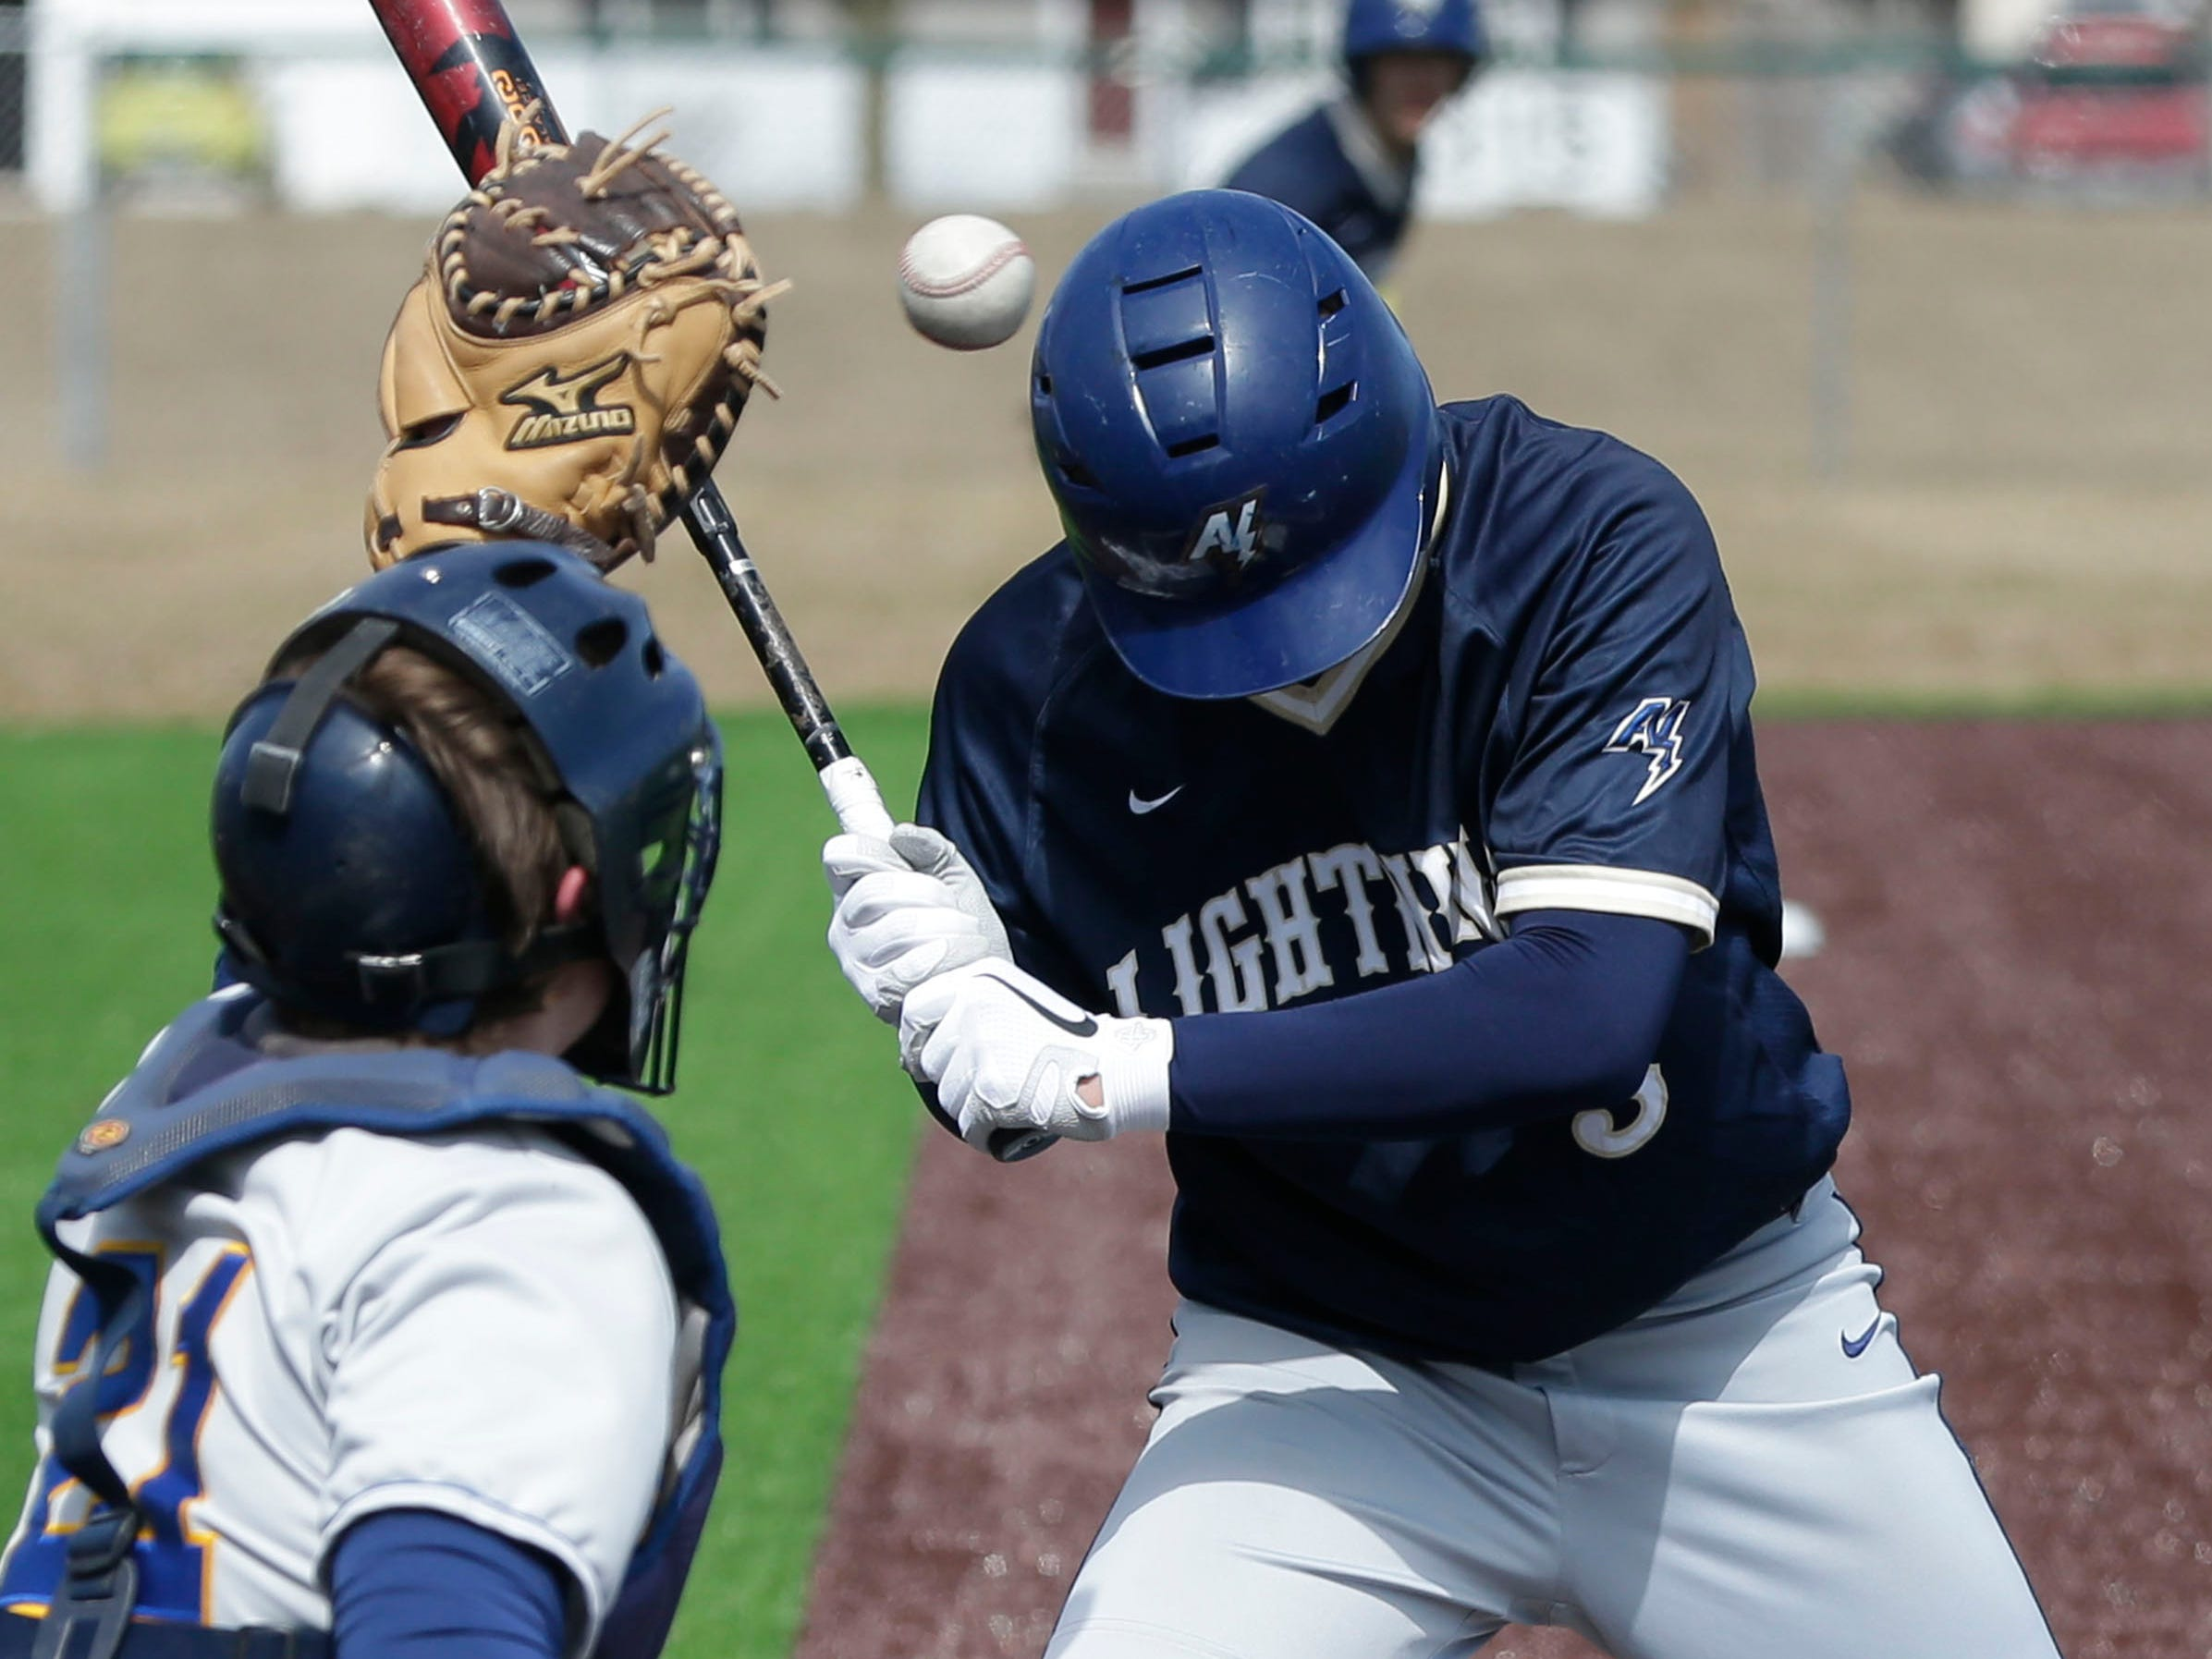 Appleton North's Wilson Zuck (3) evades a close pitch during action with Sheboygan North, Friday, March 29, 2019, at the Field of Dreams complex in Sheboygan, Wis.